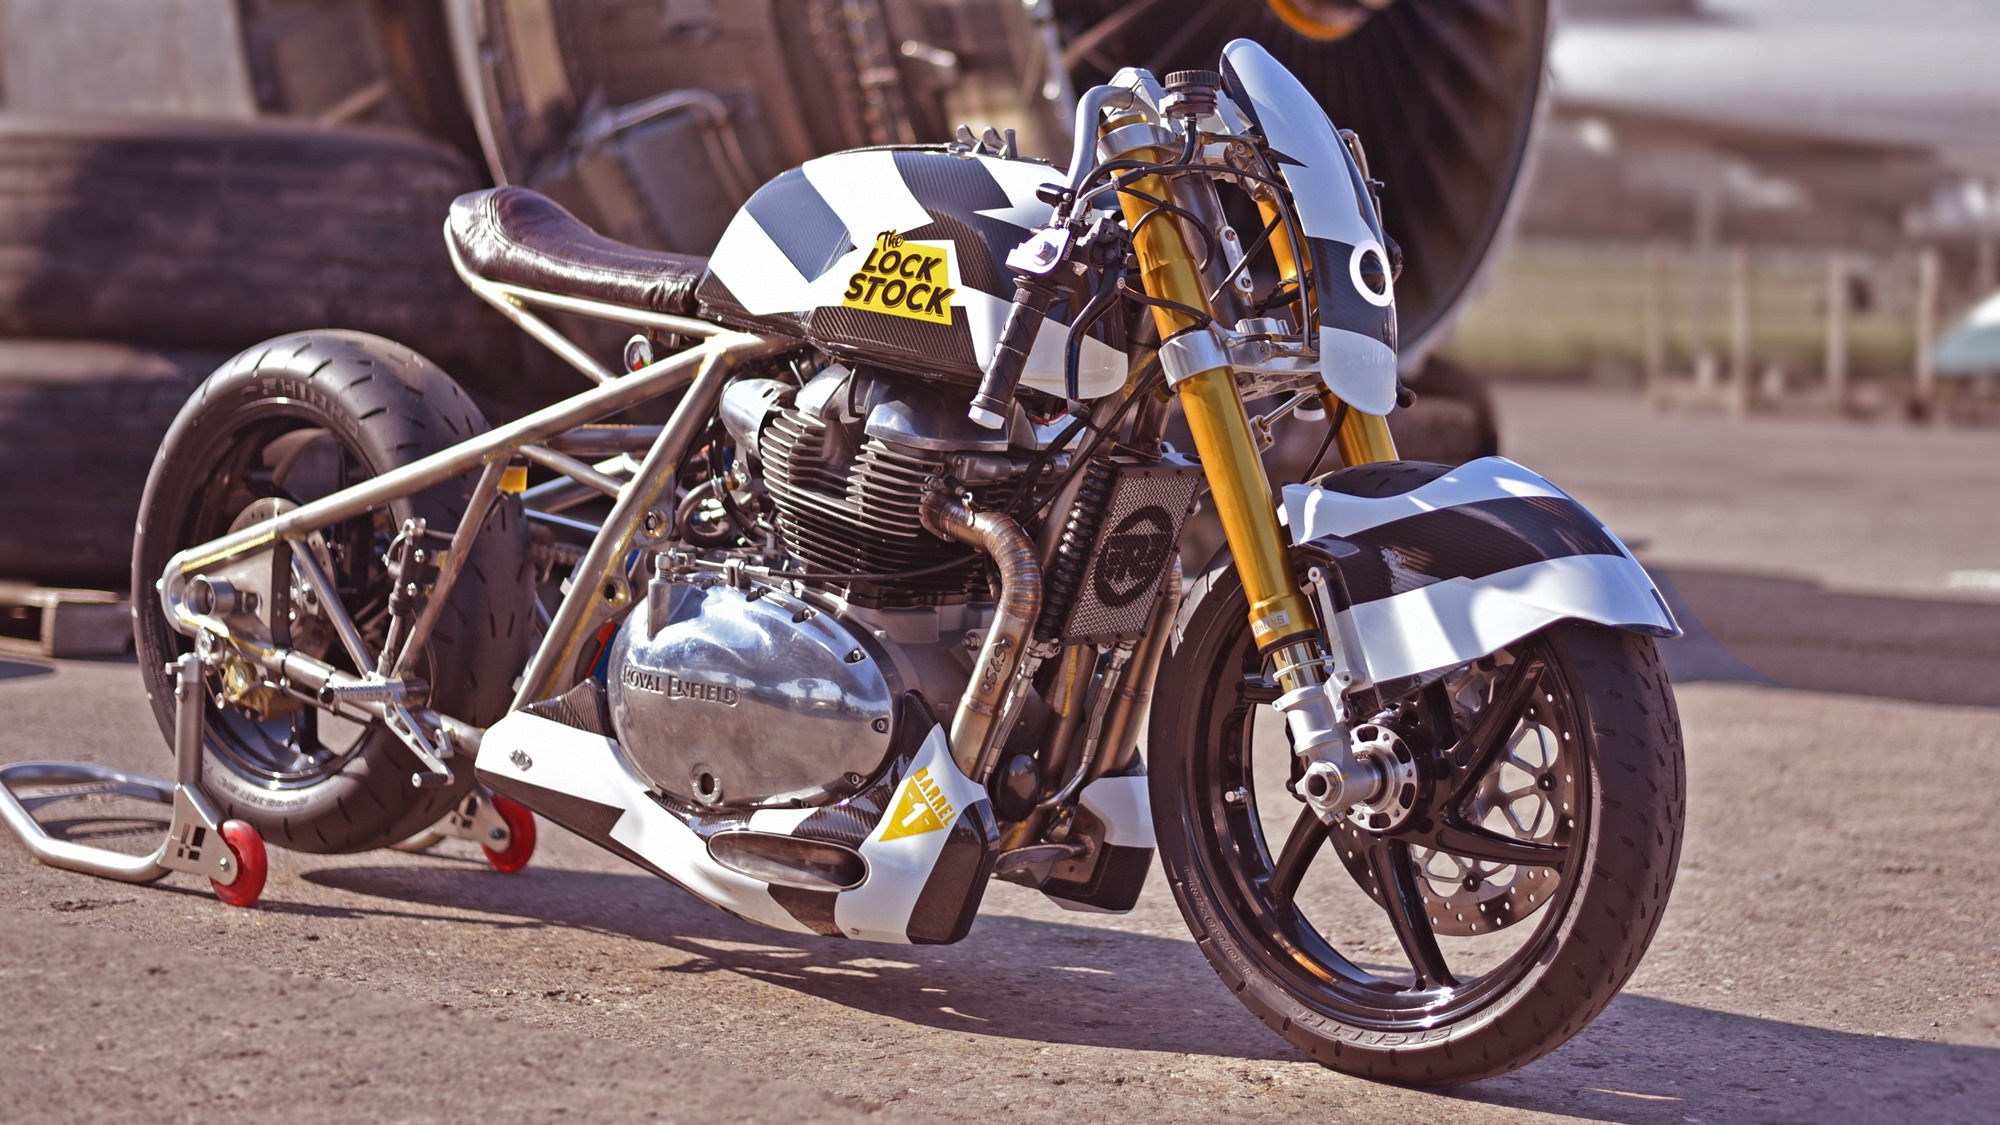 The 'Interceptor' – By Old Empire Motorcycles - Base Interceptor 650